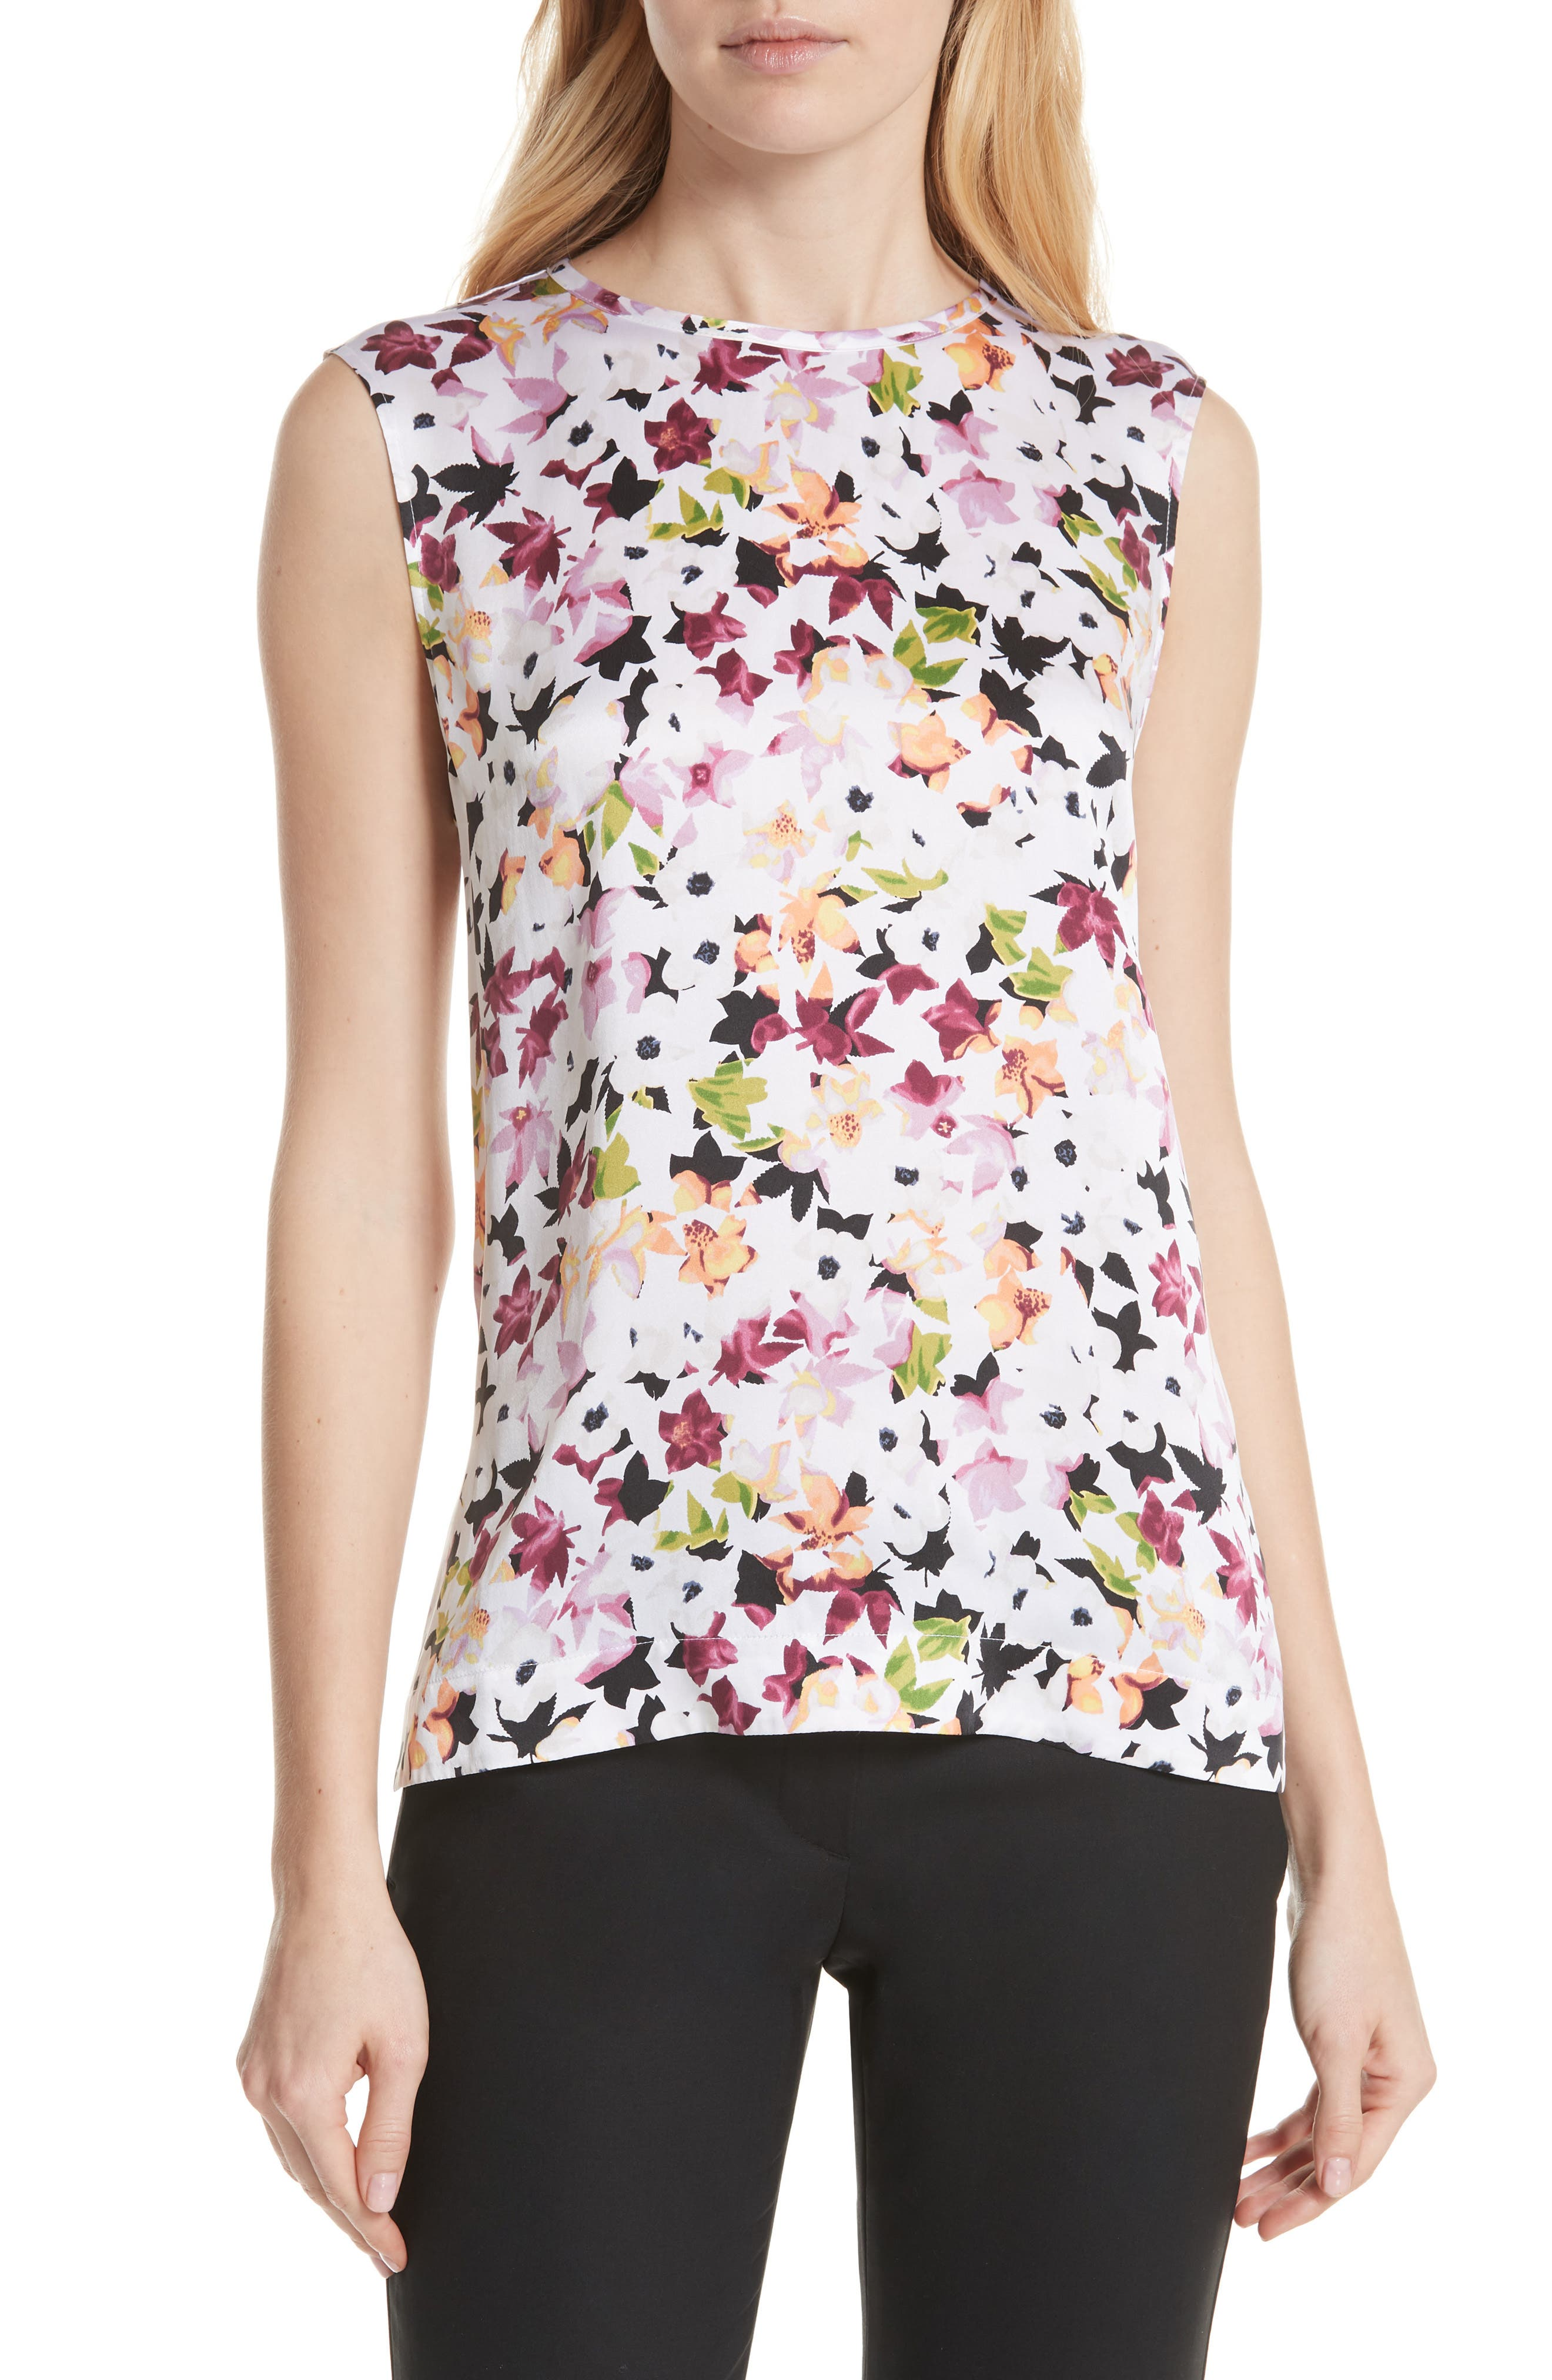 Layla Floral Silk Top,                             Main thumbnail 1, color,                             Bright White Multi